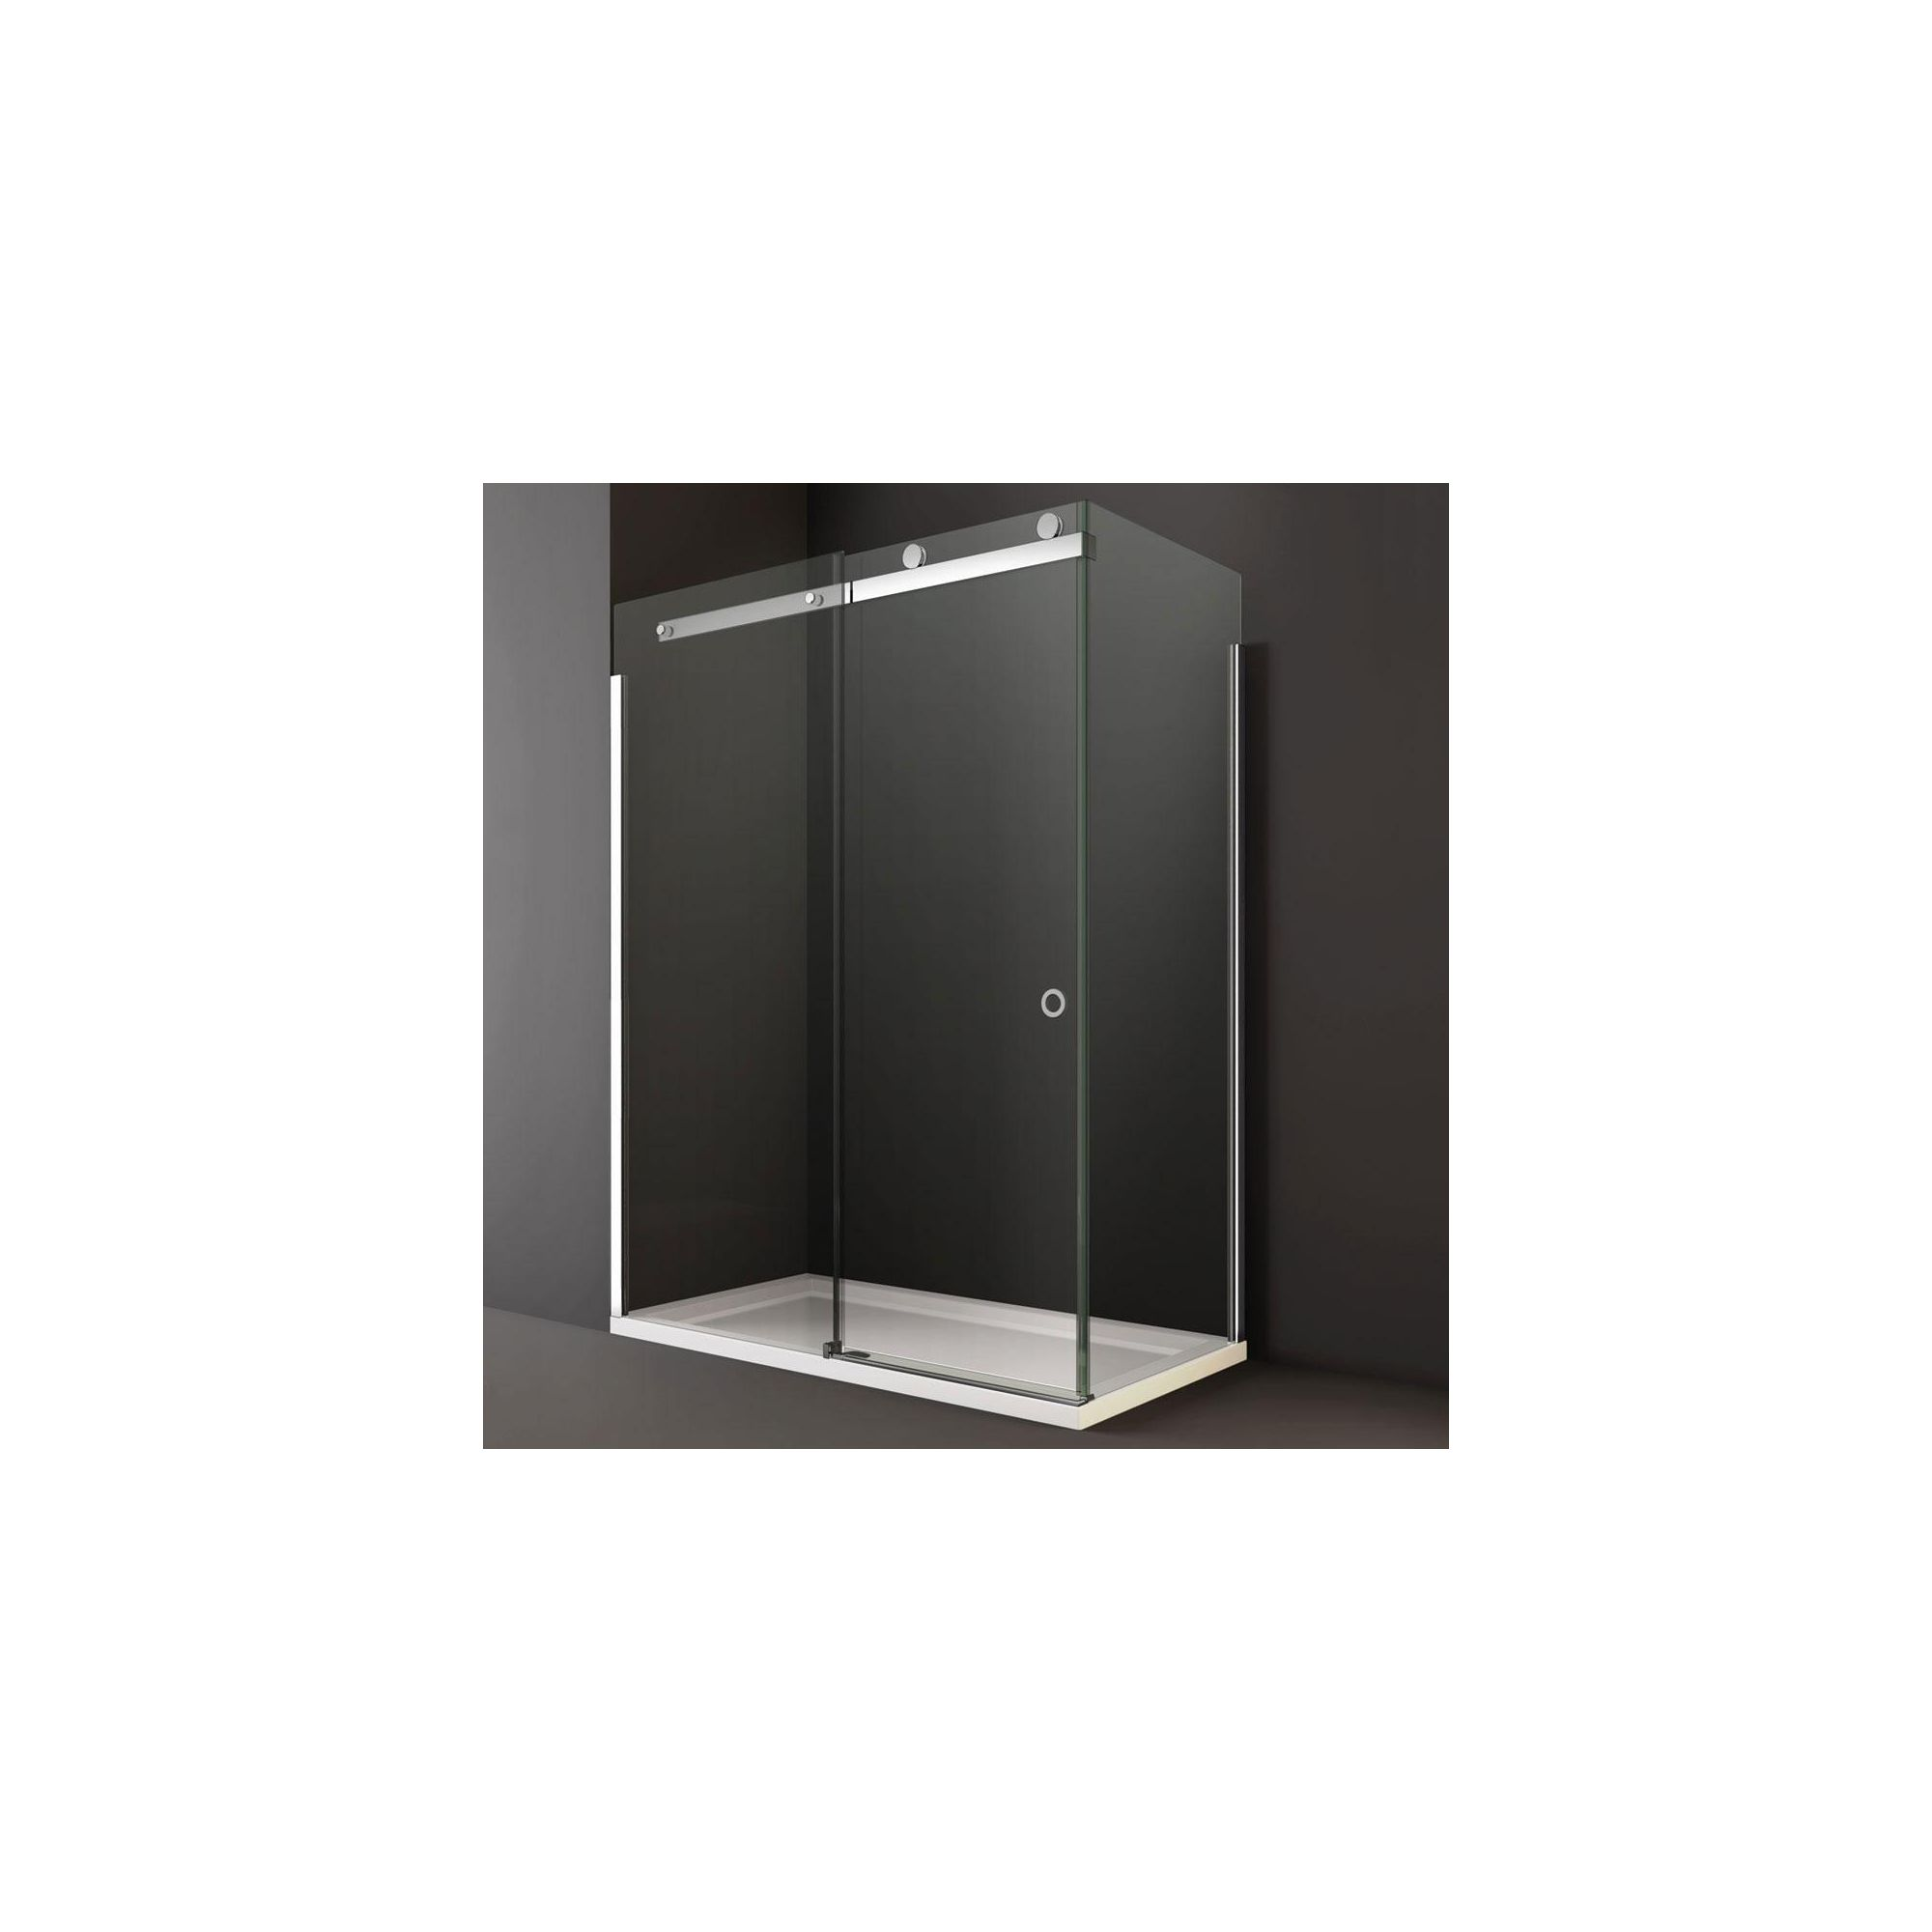 Merlyn Series 10 Sliding Shower Door, 1000mm Wide, 10mm Clear Glass, Left Handed at Tescos Direct